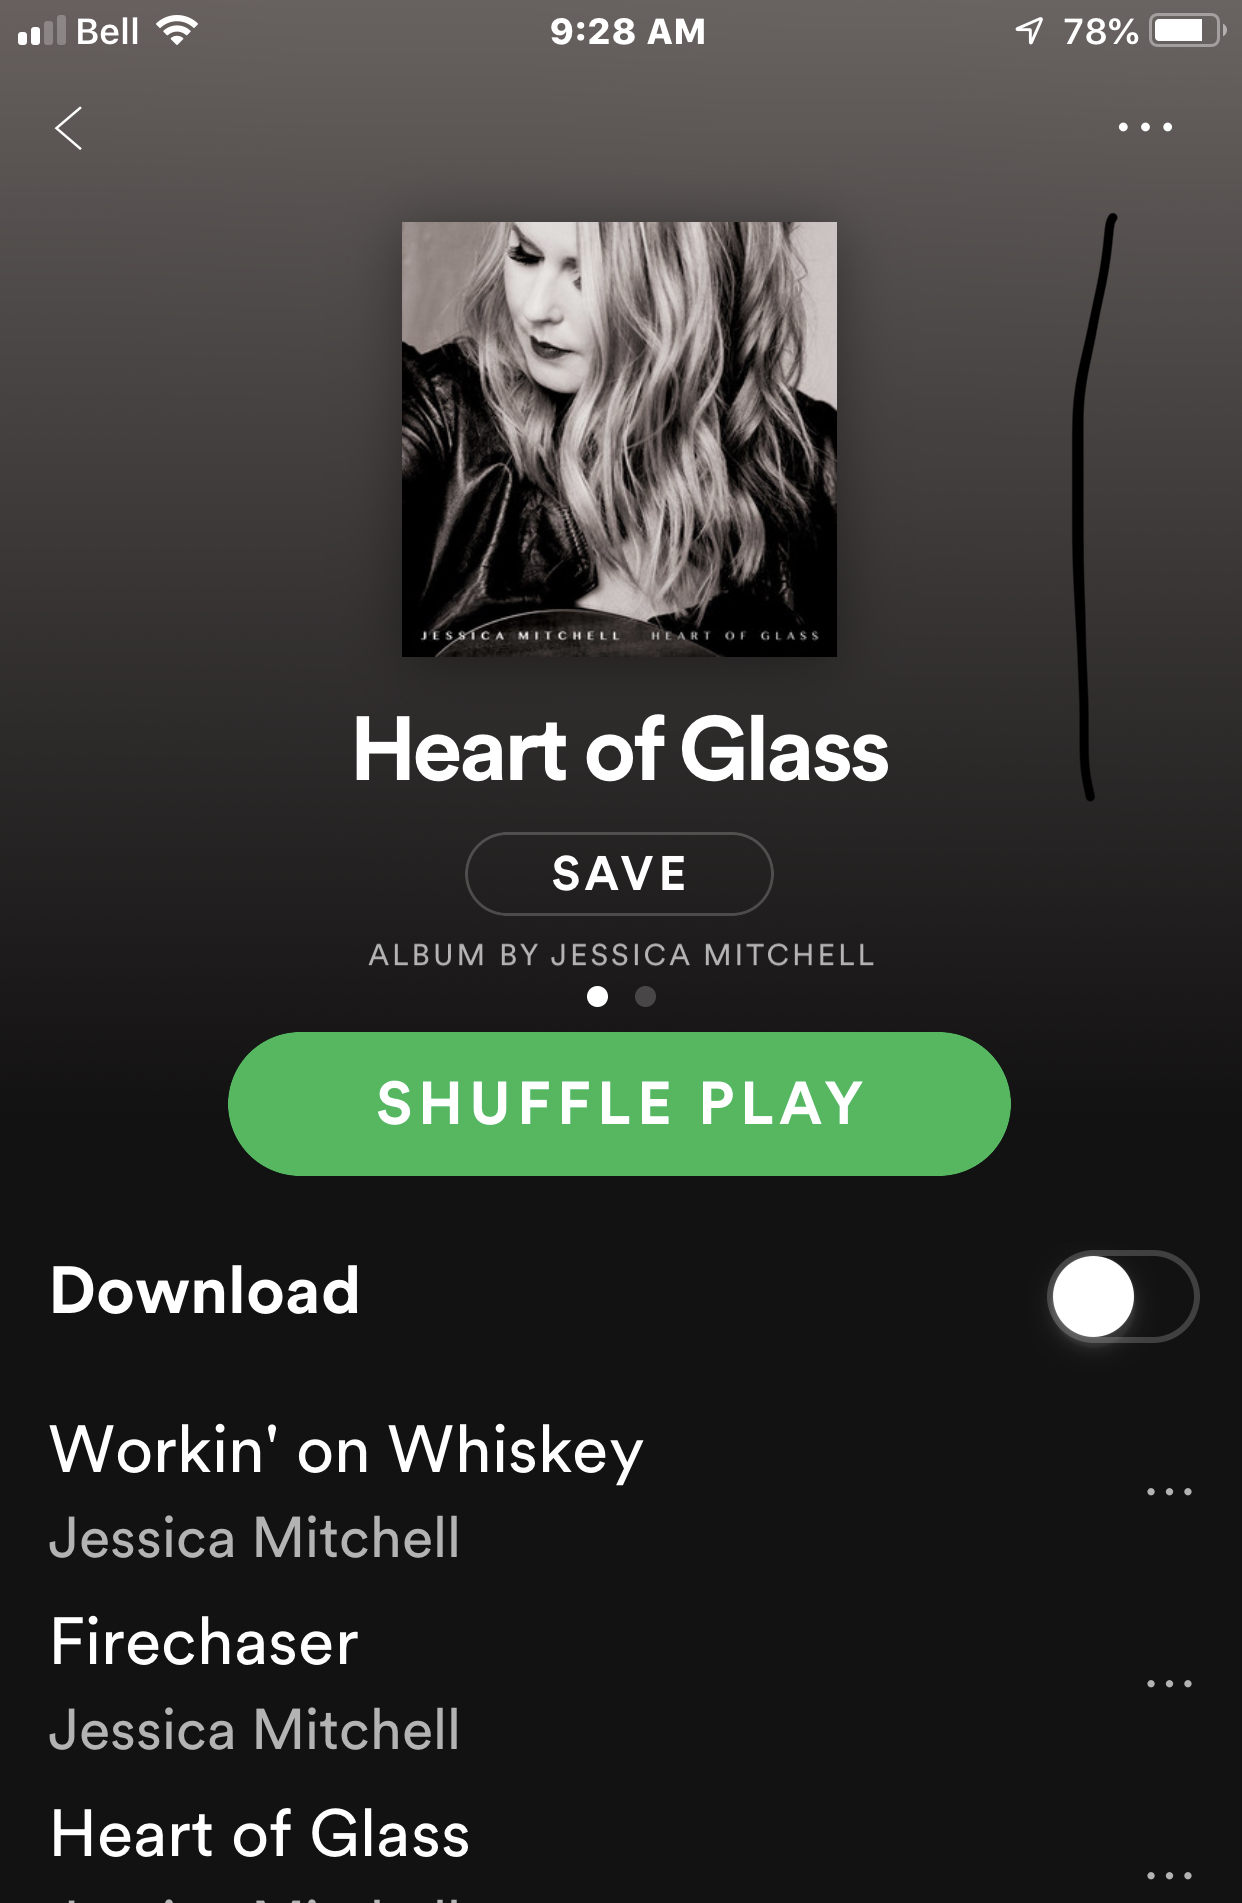 Check out Jessica on Spotify.